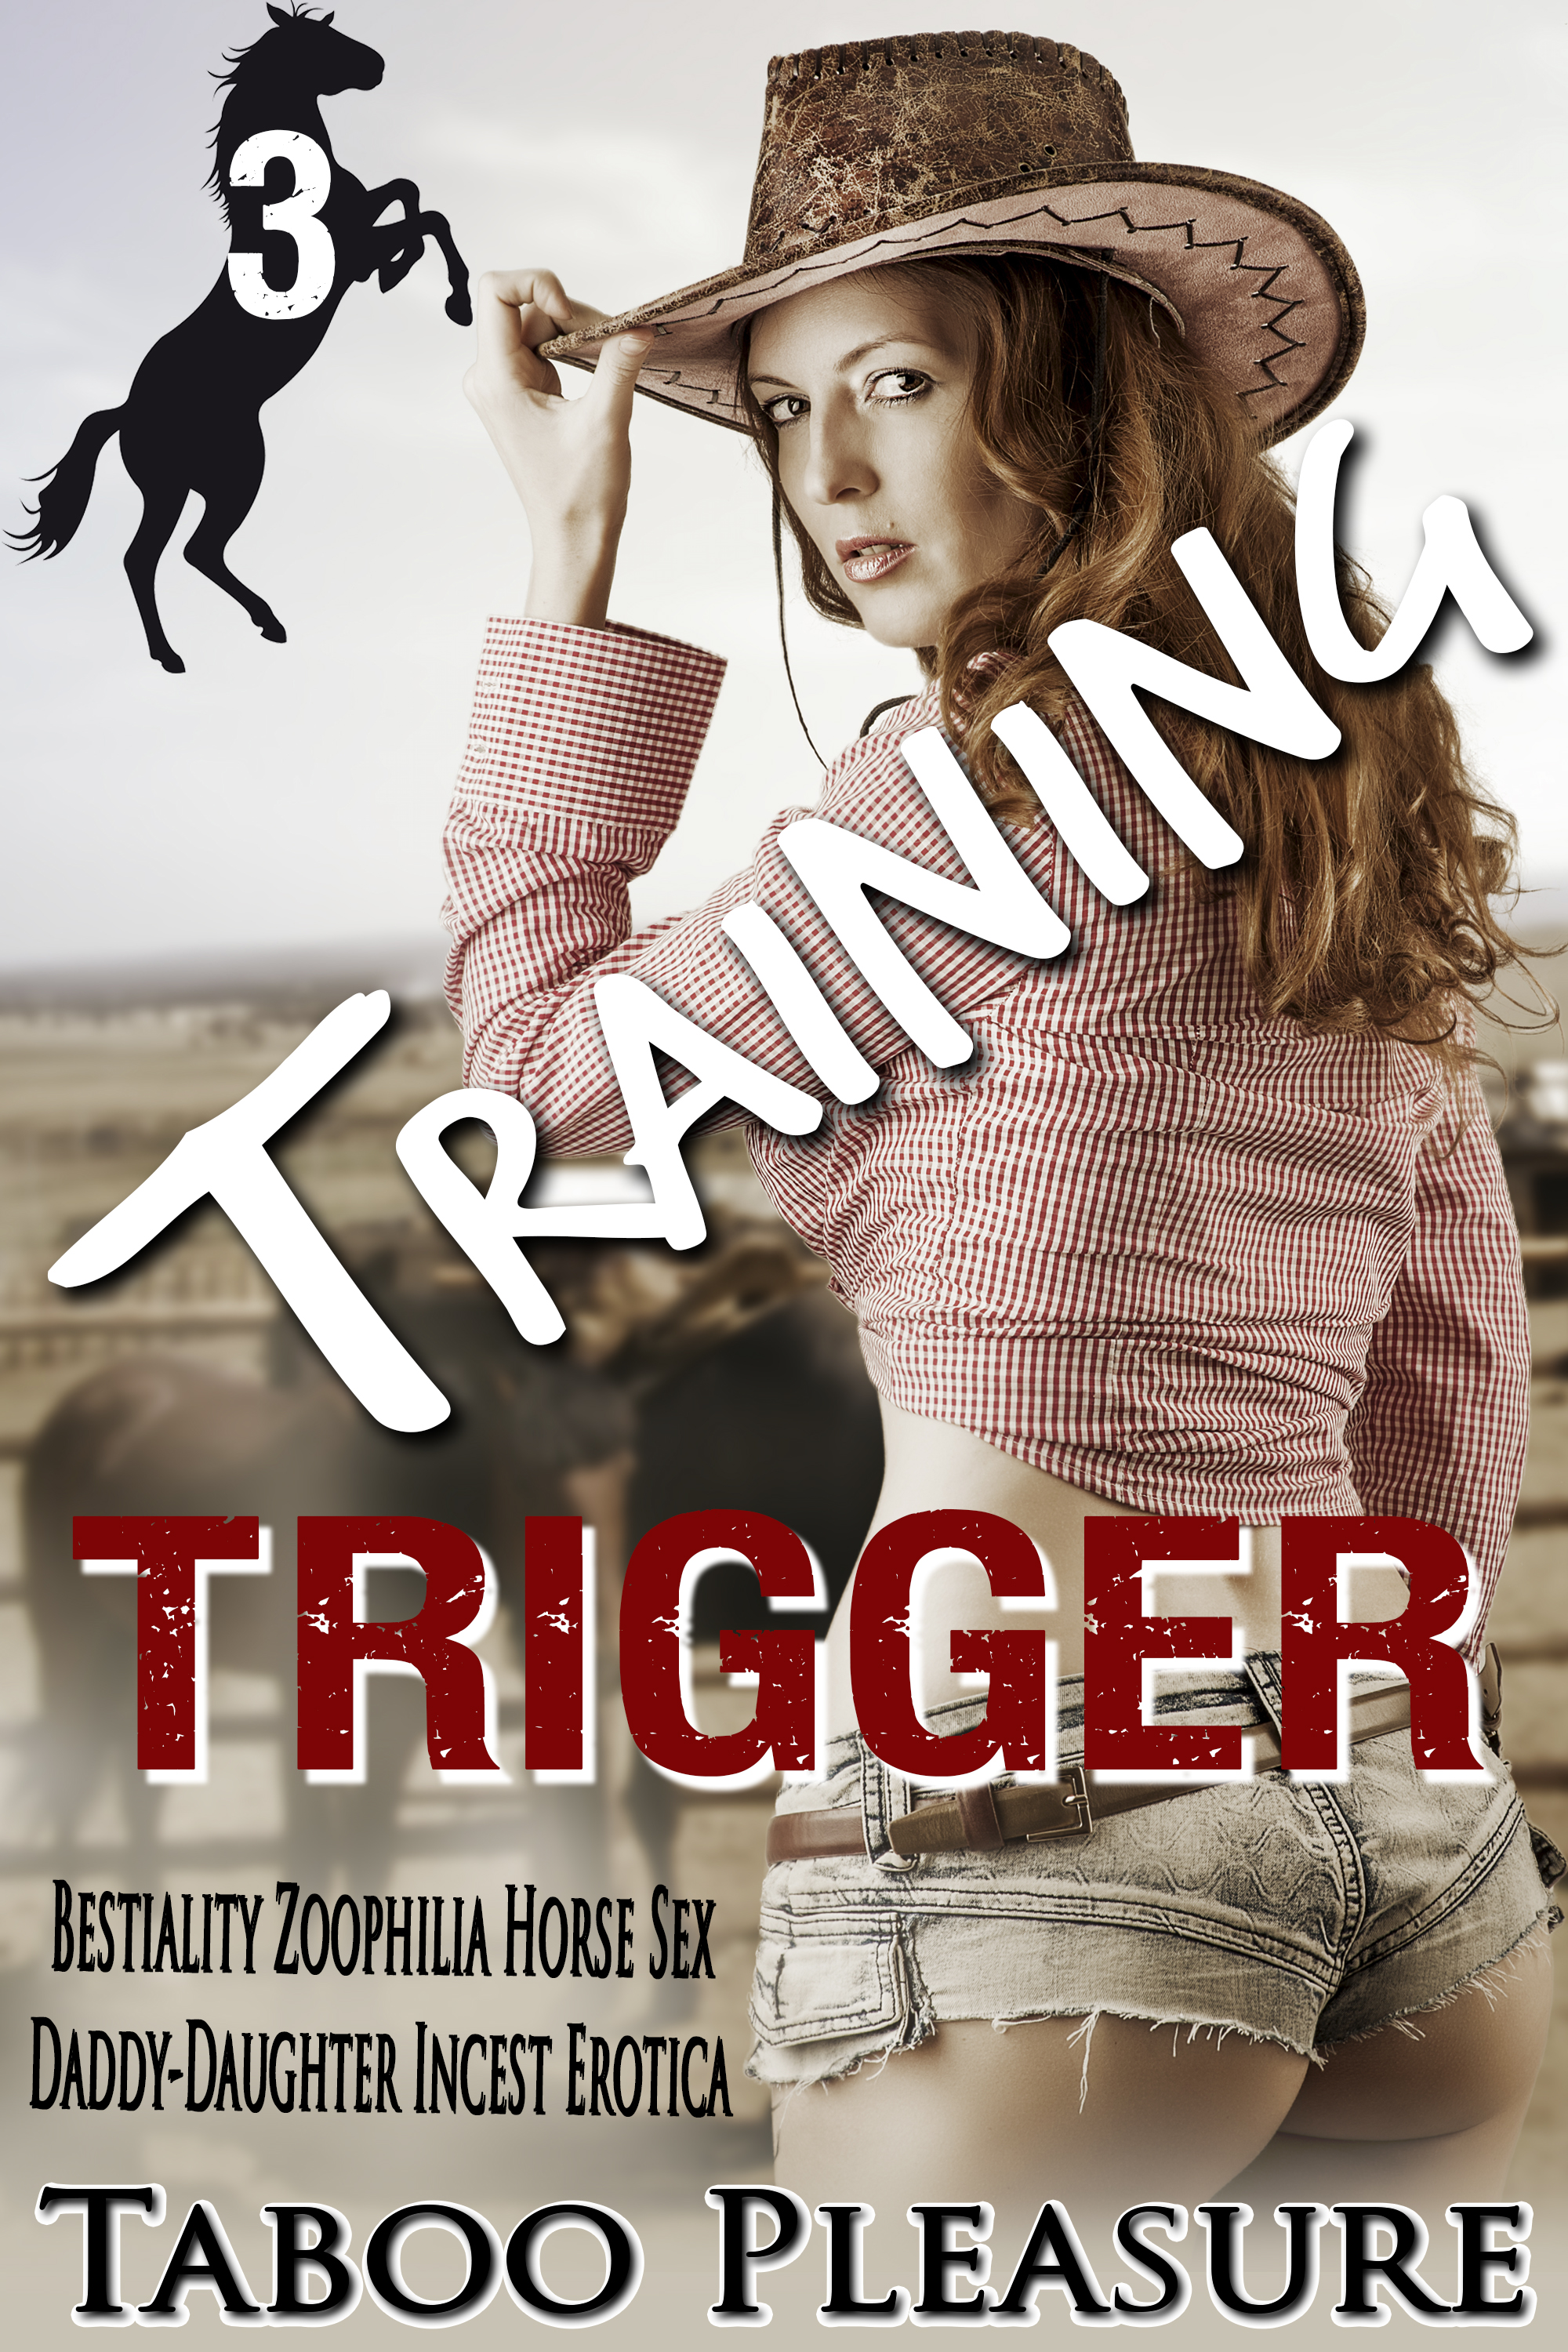 zoophilia horse sex Training Trigger - Book 3 - Bestiality Zoophilia Horse Sex Daddy-Daughter  Incest Erotica